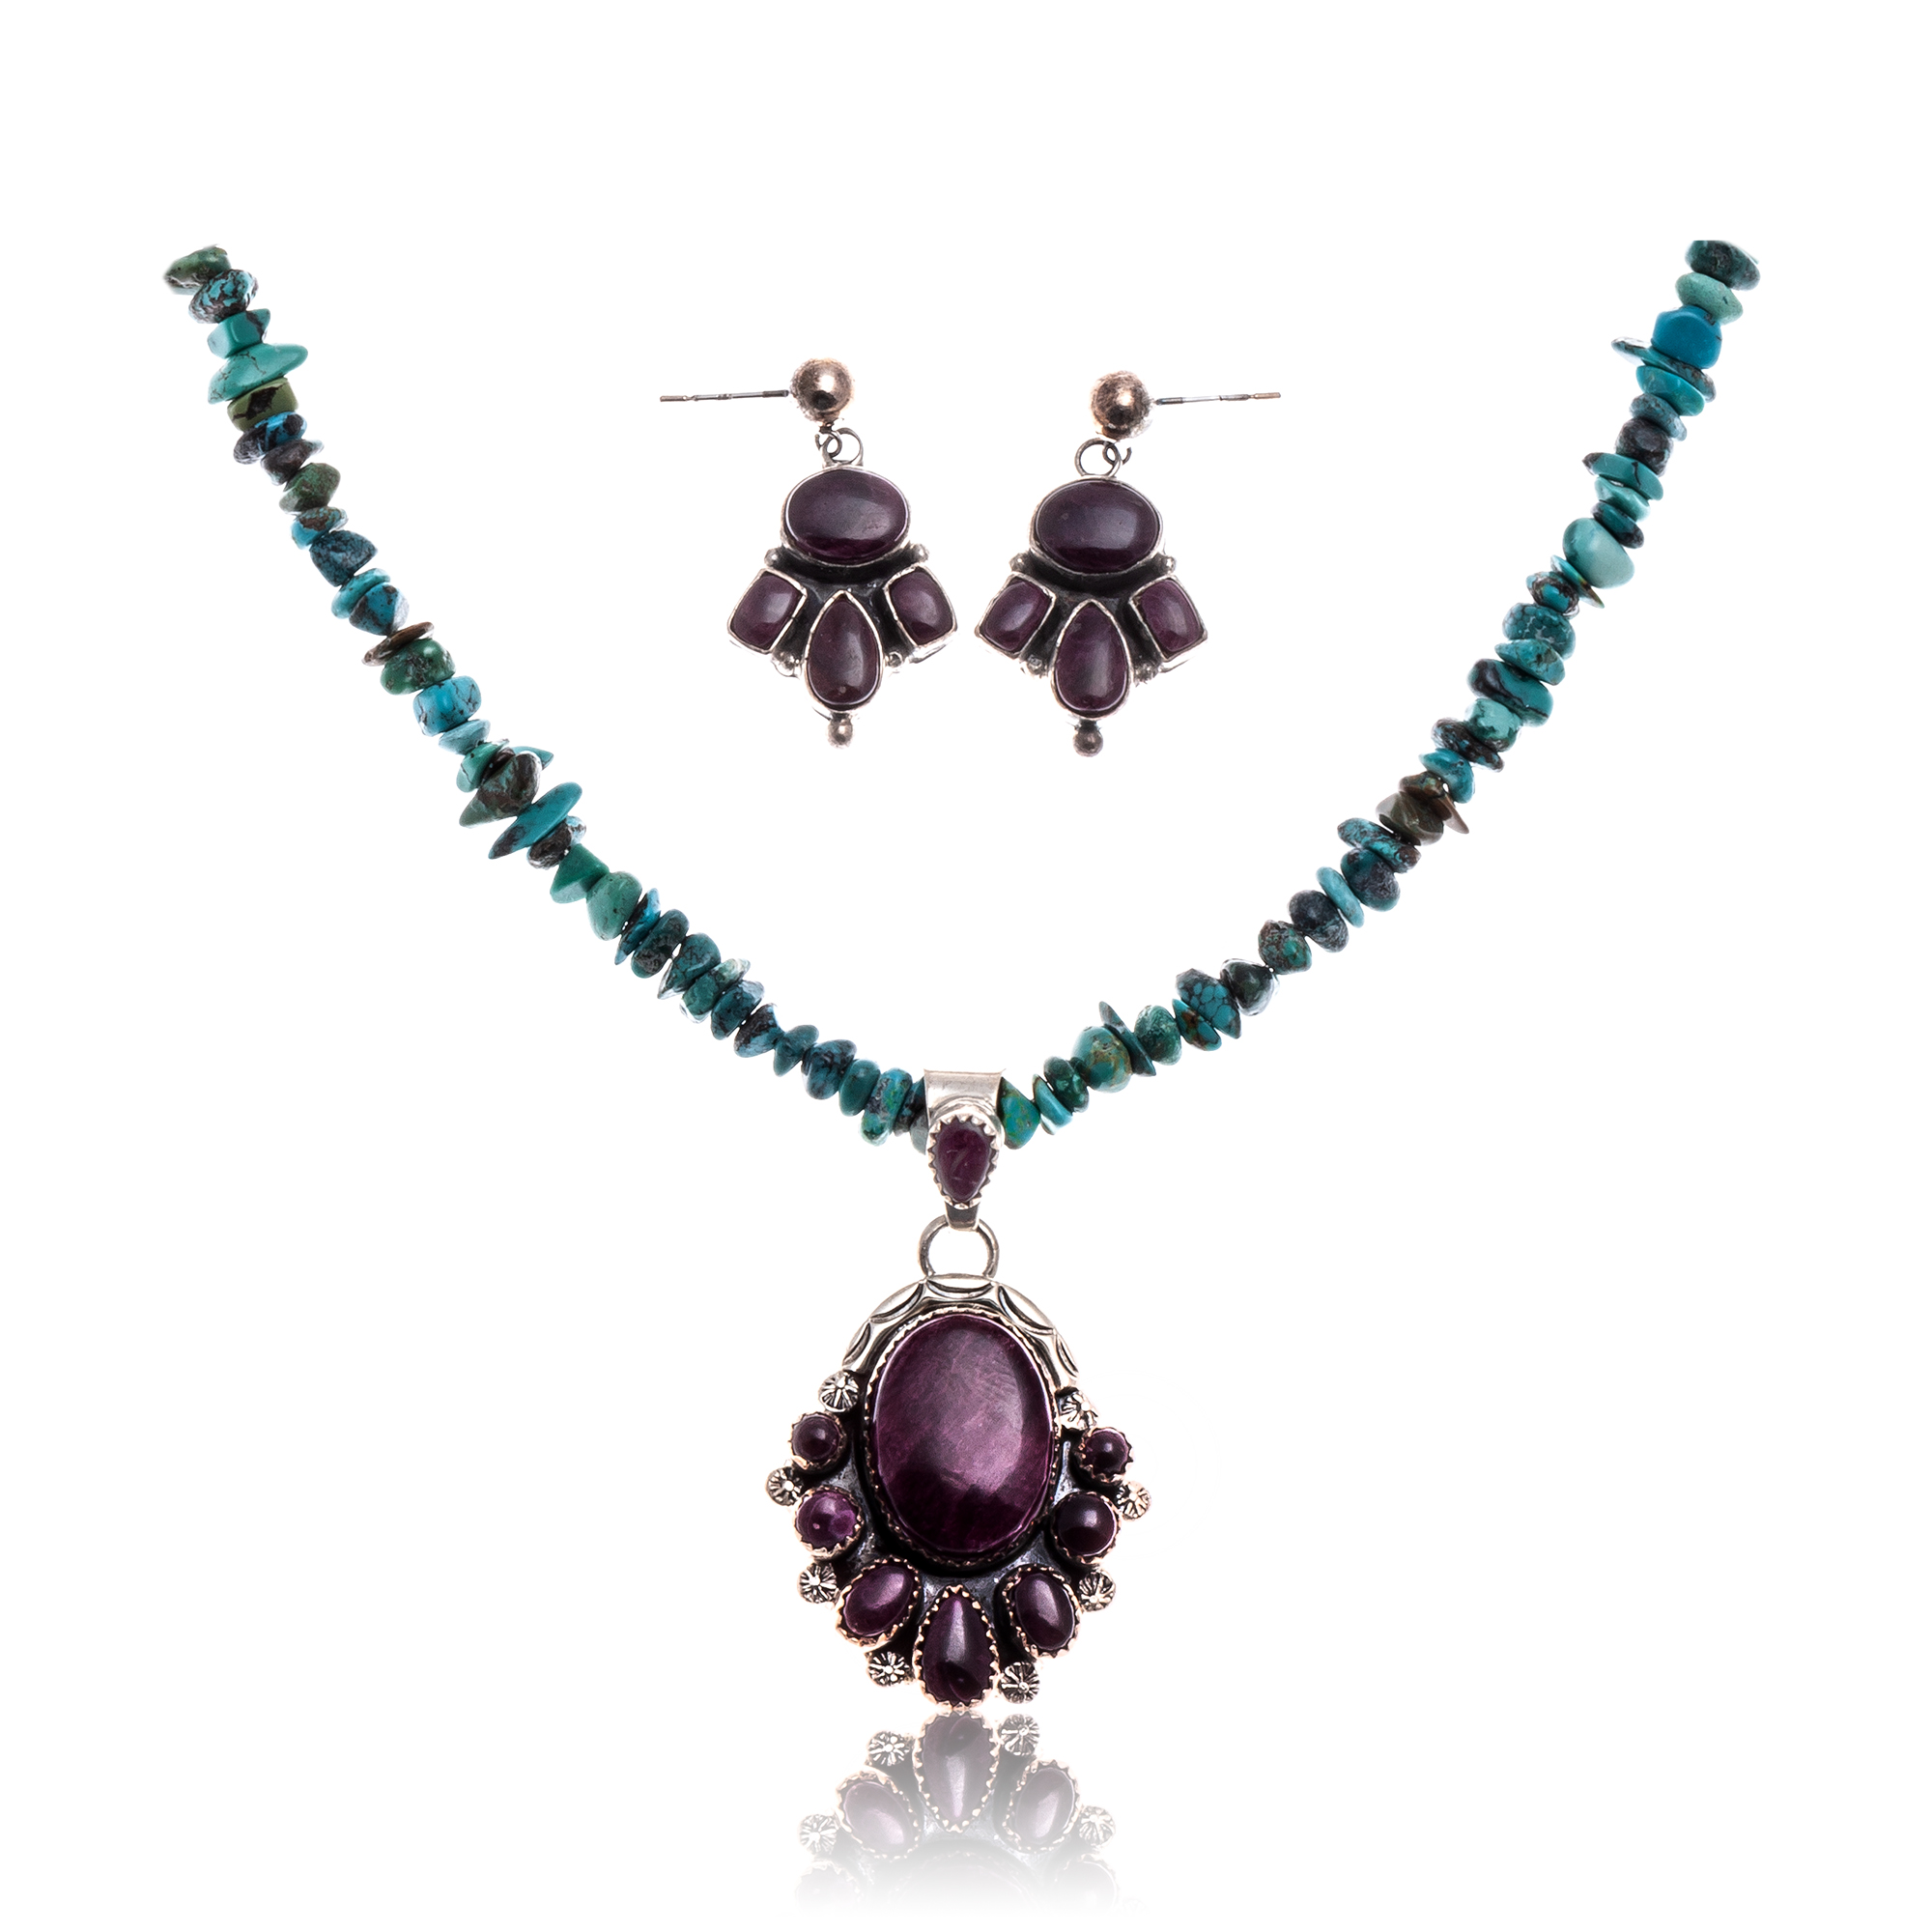 Natural Turquoise Purple Spiny Oyster .925 Sterling Silver Certified Authentic Navajo Native American Handmade Pendant Earnings Set 24519-15222-18198-10 Sets NB1809262232260 24519-15222-18198-10 (by LomaSiiva)